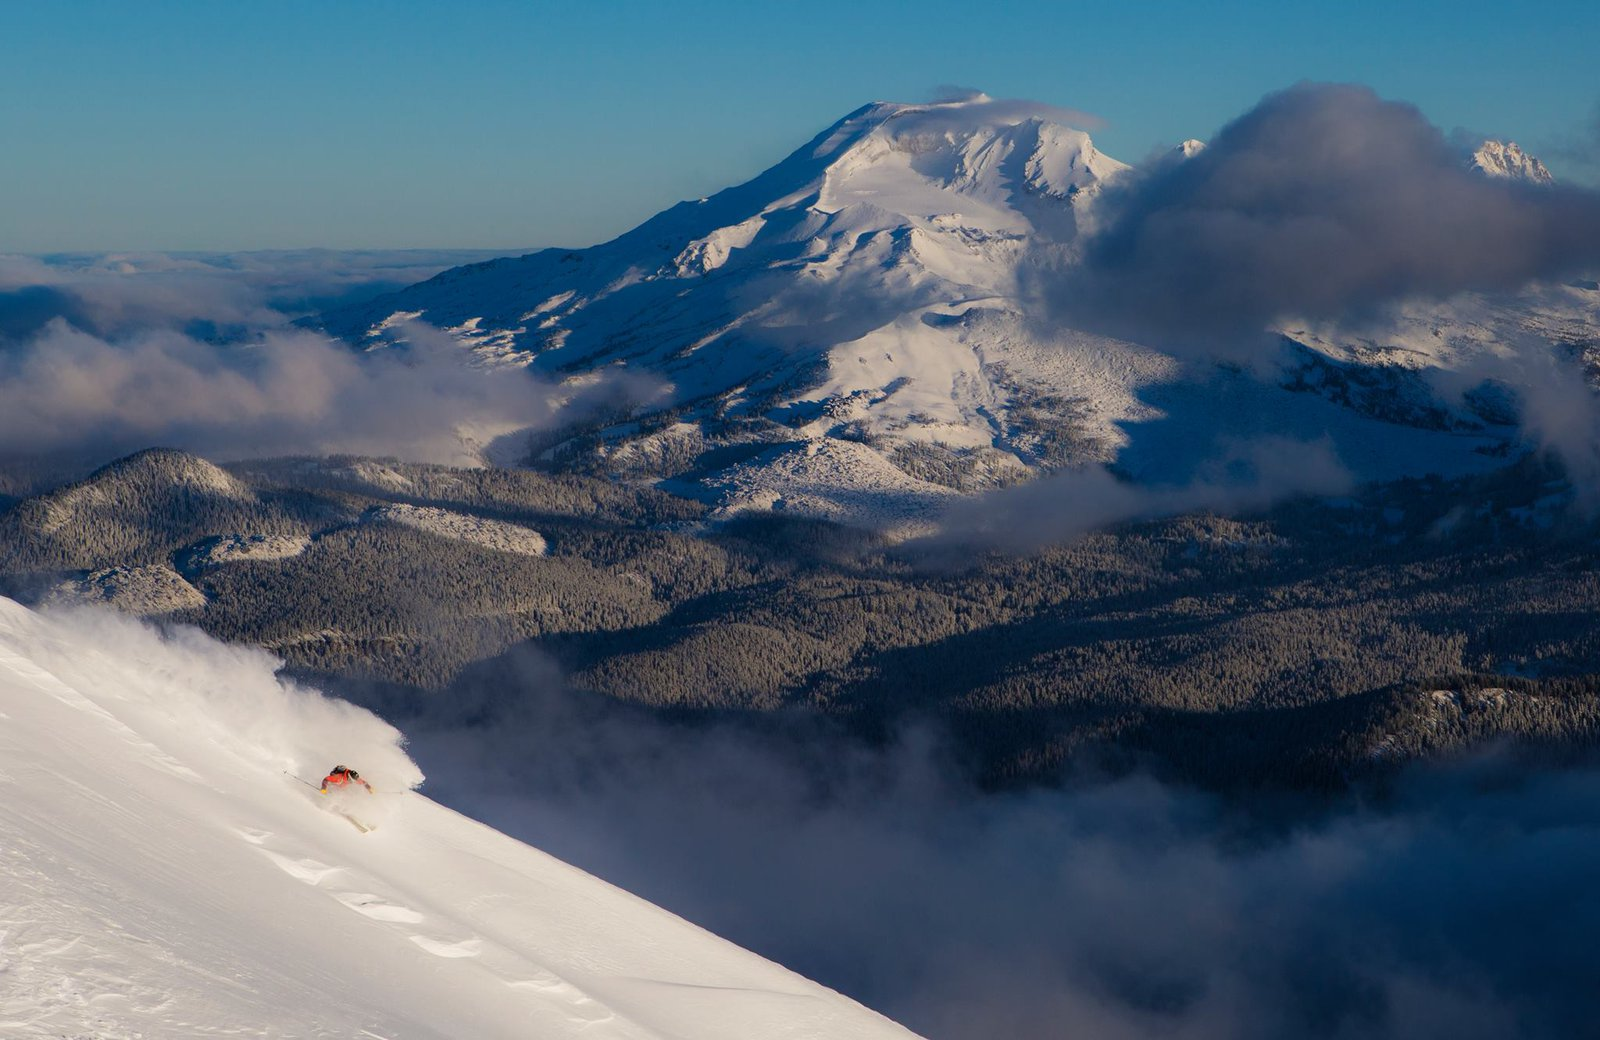 Mt.Bachelor with South Sister in the background